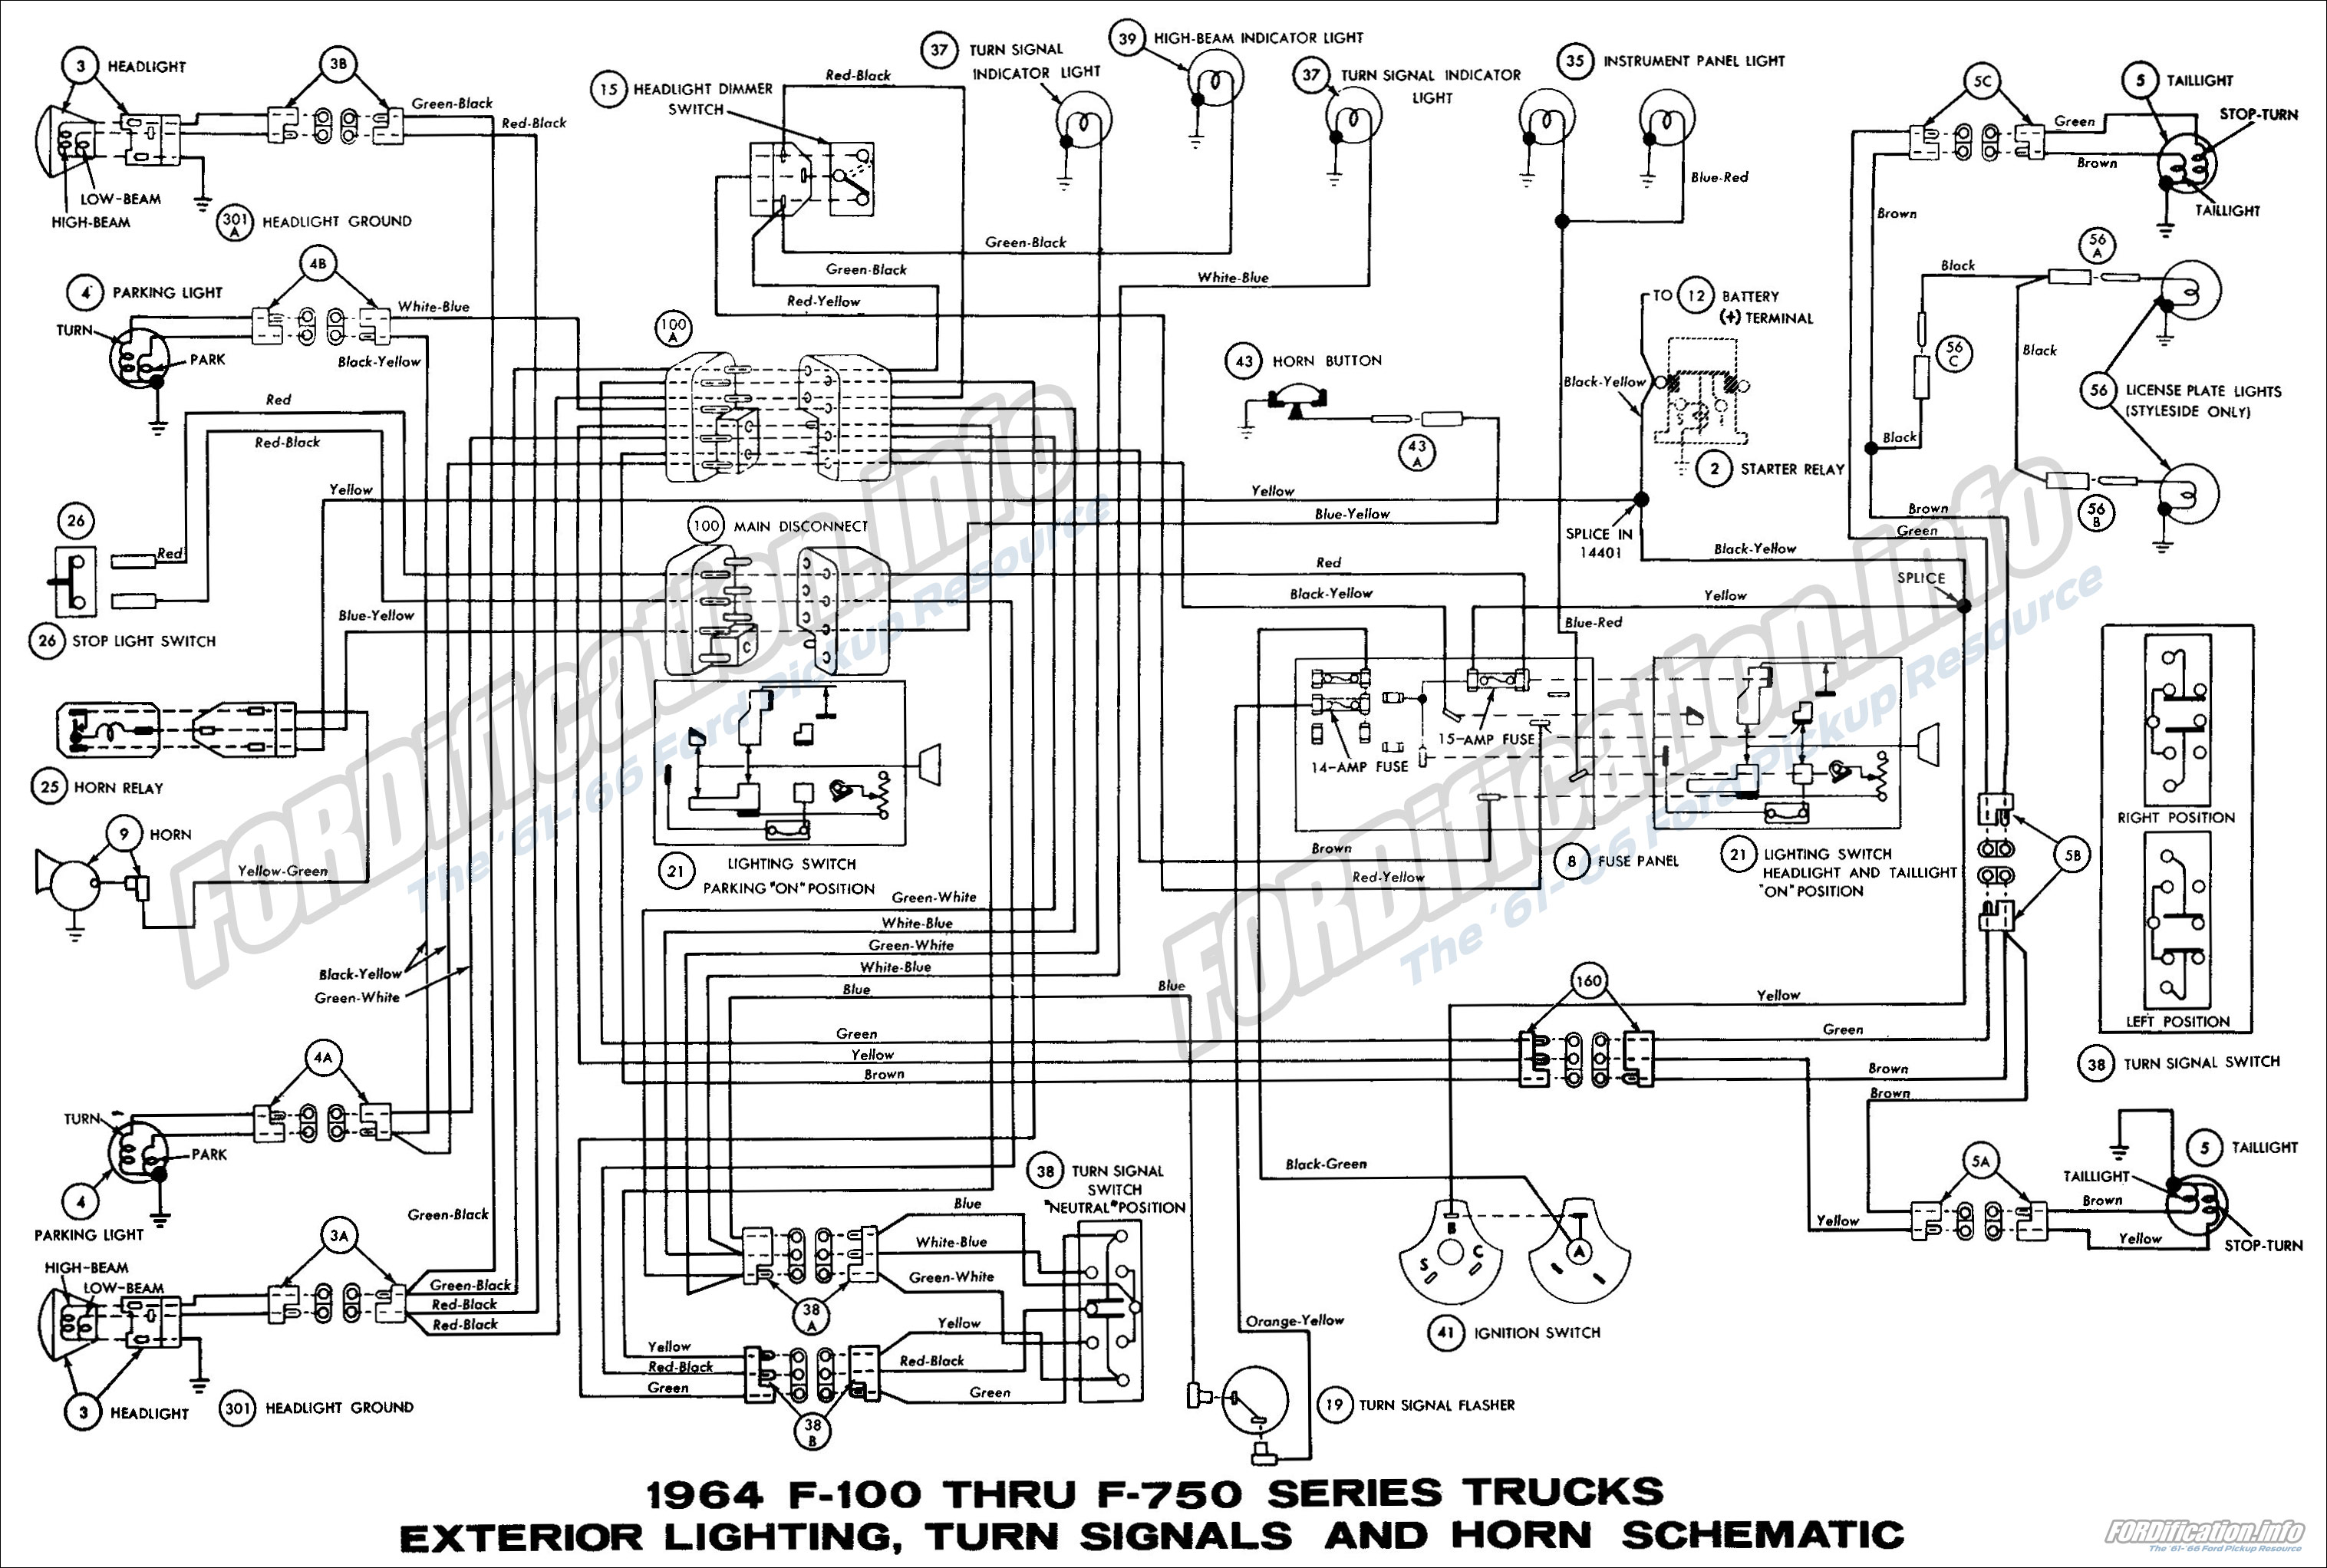 1964 ford truck wiring diagrams fordification info the 61 66 rh fordification info 1964 f100 turn signal wiring diagram 1969 f100 wiring diagram